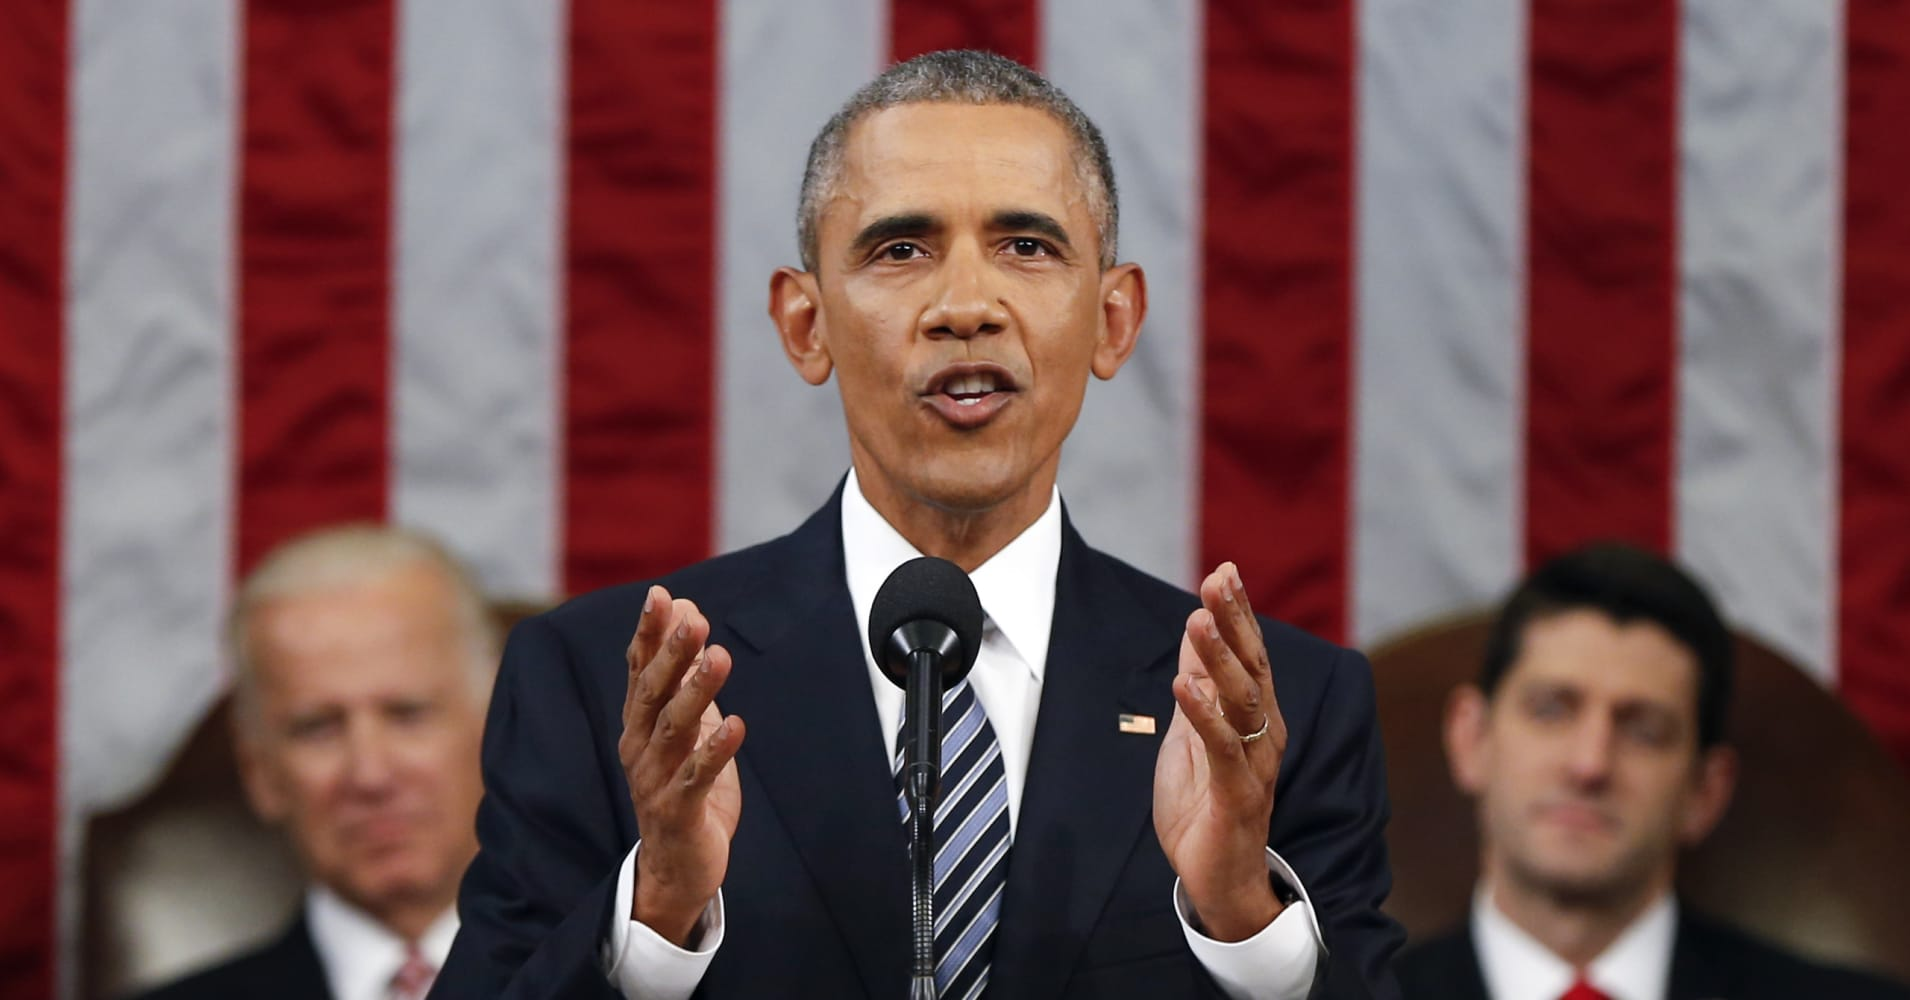 obama in state of the union we need to fix our politics